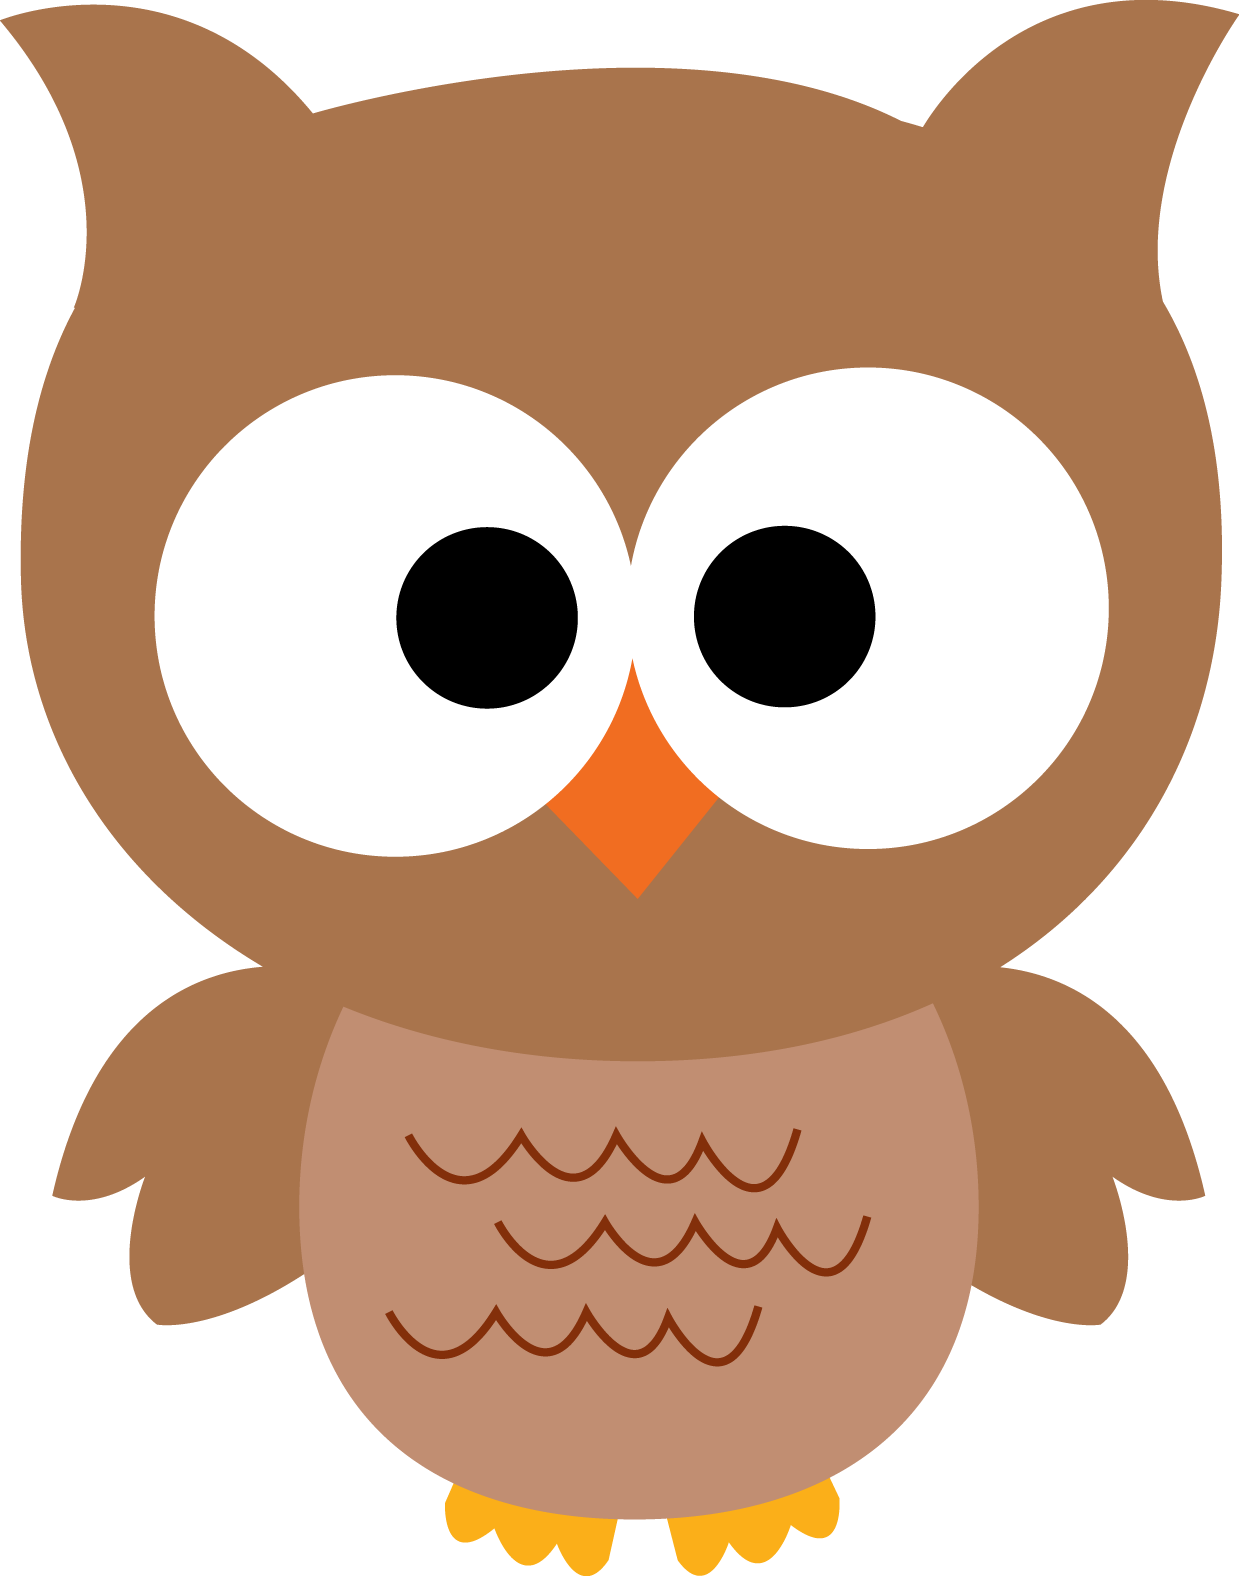 Cartoon Owl Clipart - Clipart Kid